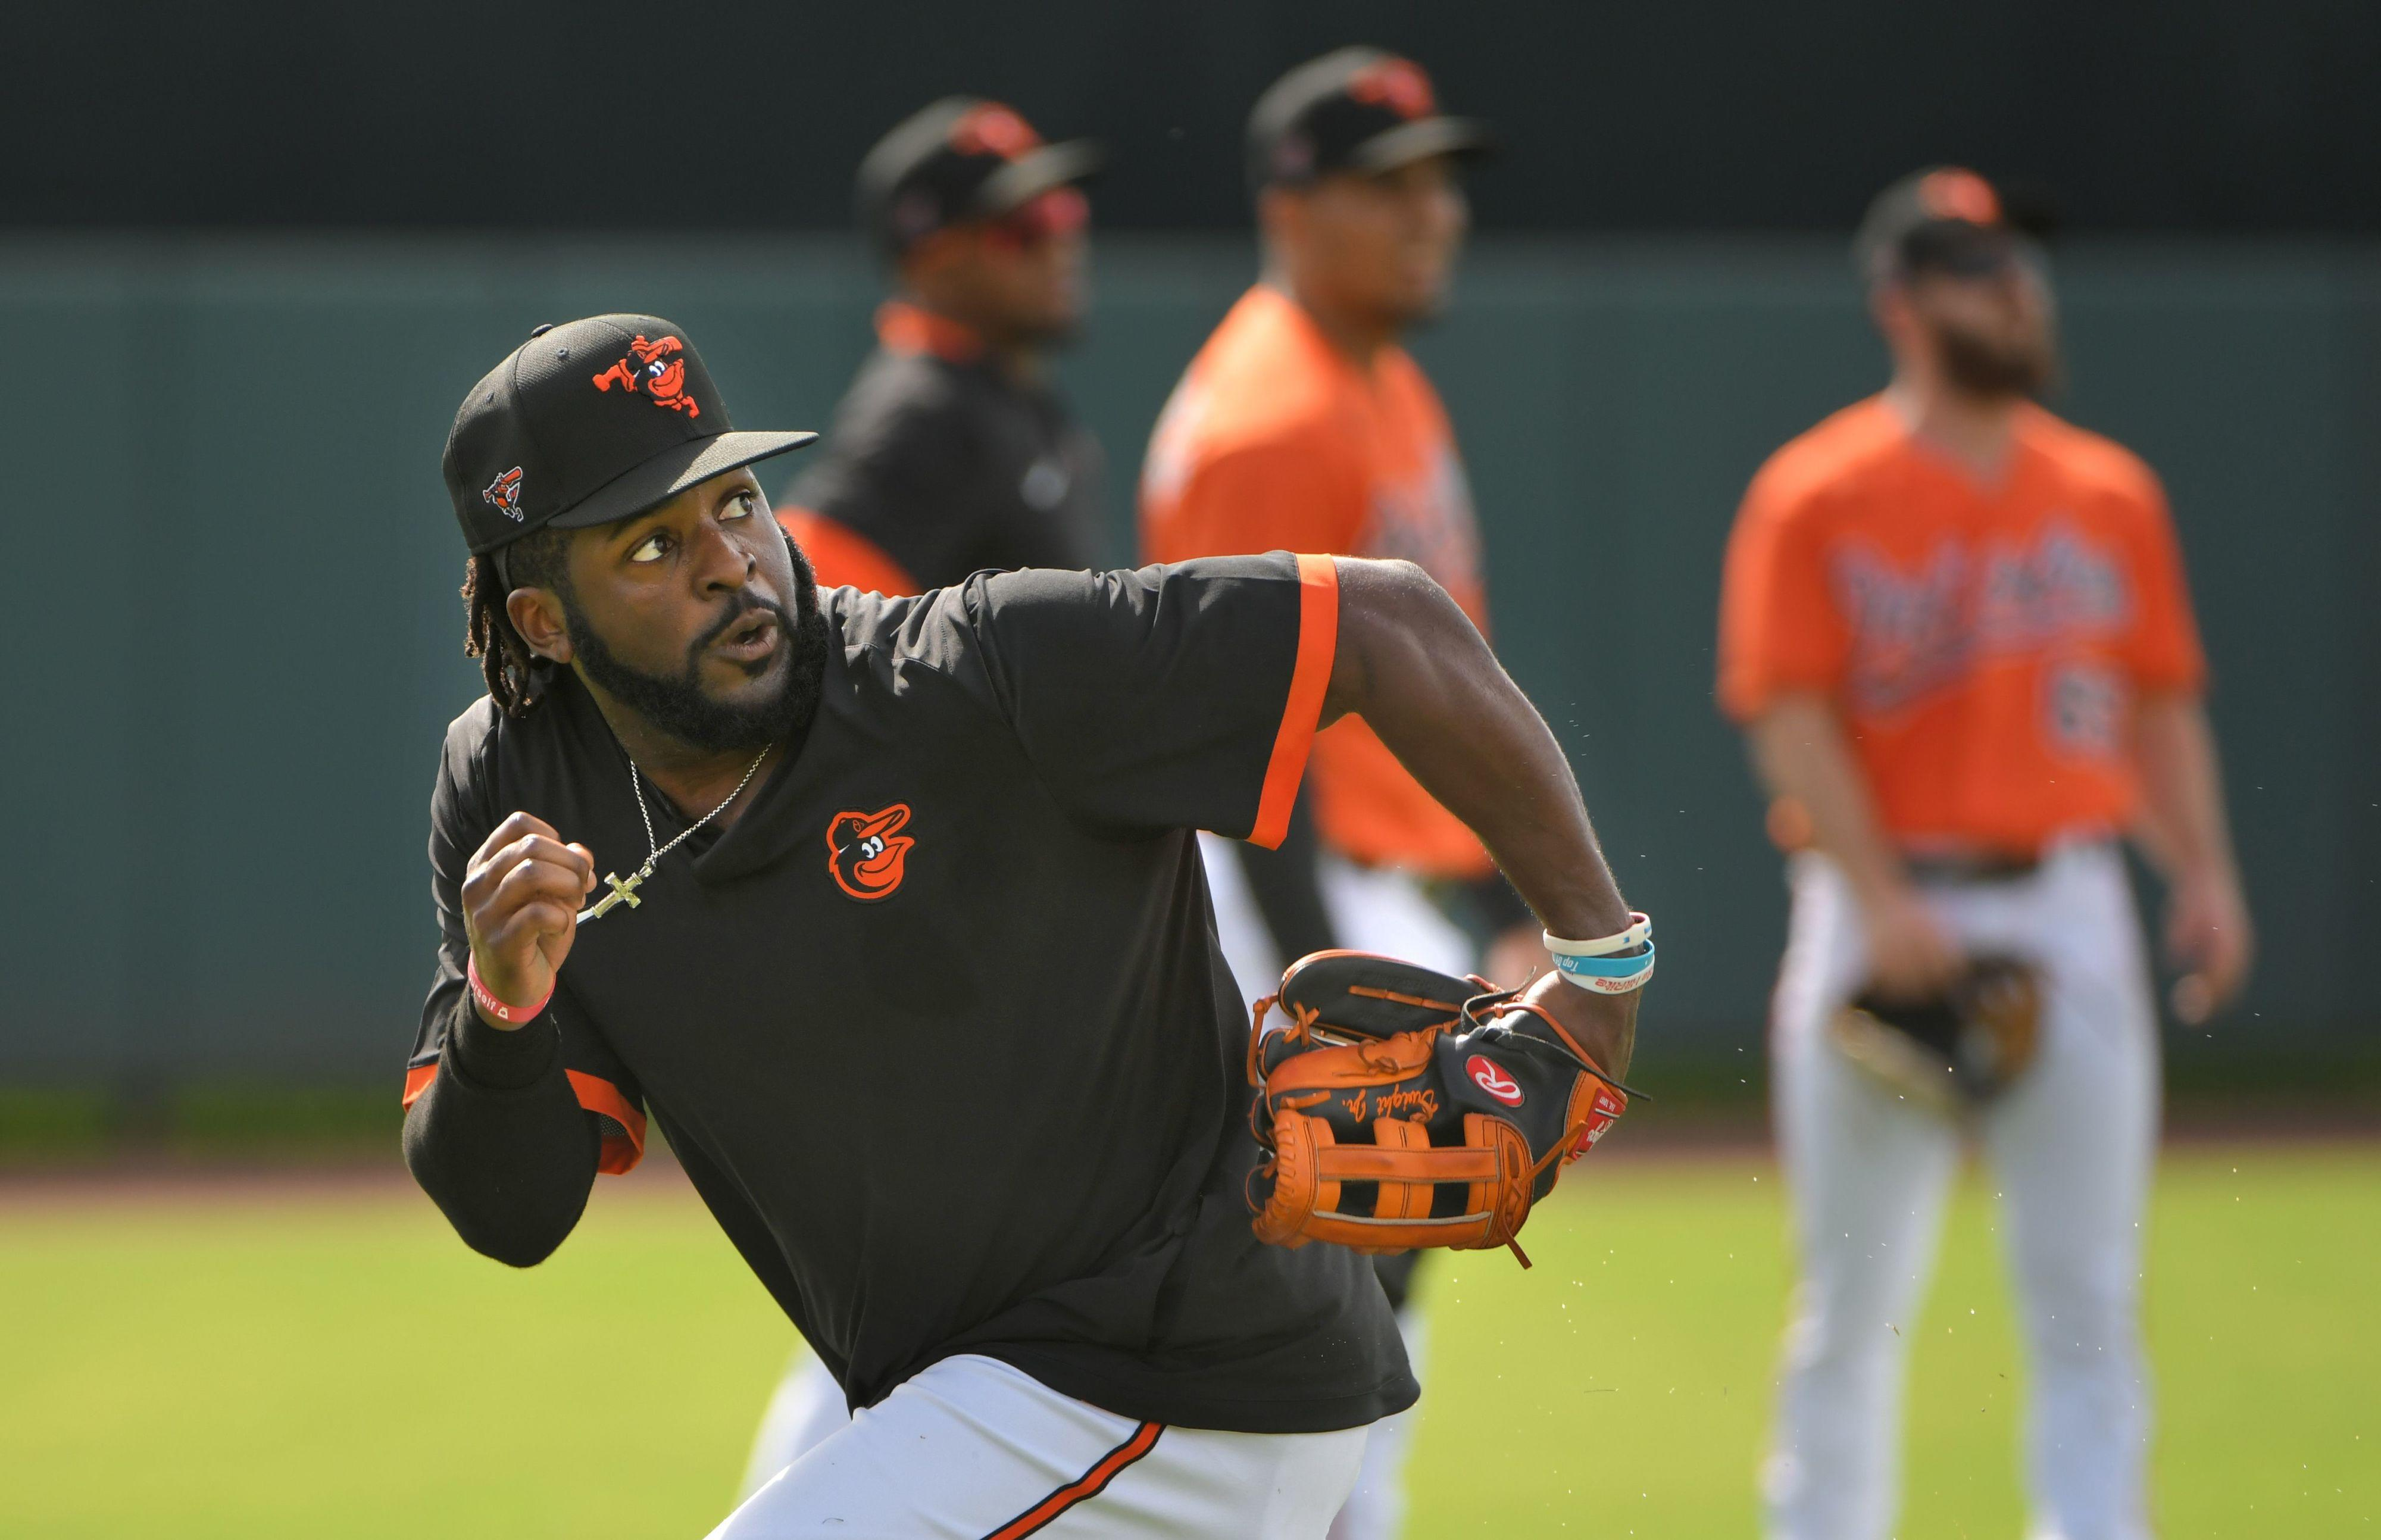 As Orioles' Dwight Smith Jr. returns to workouts, club showing signs of health protocols paying off